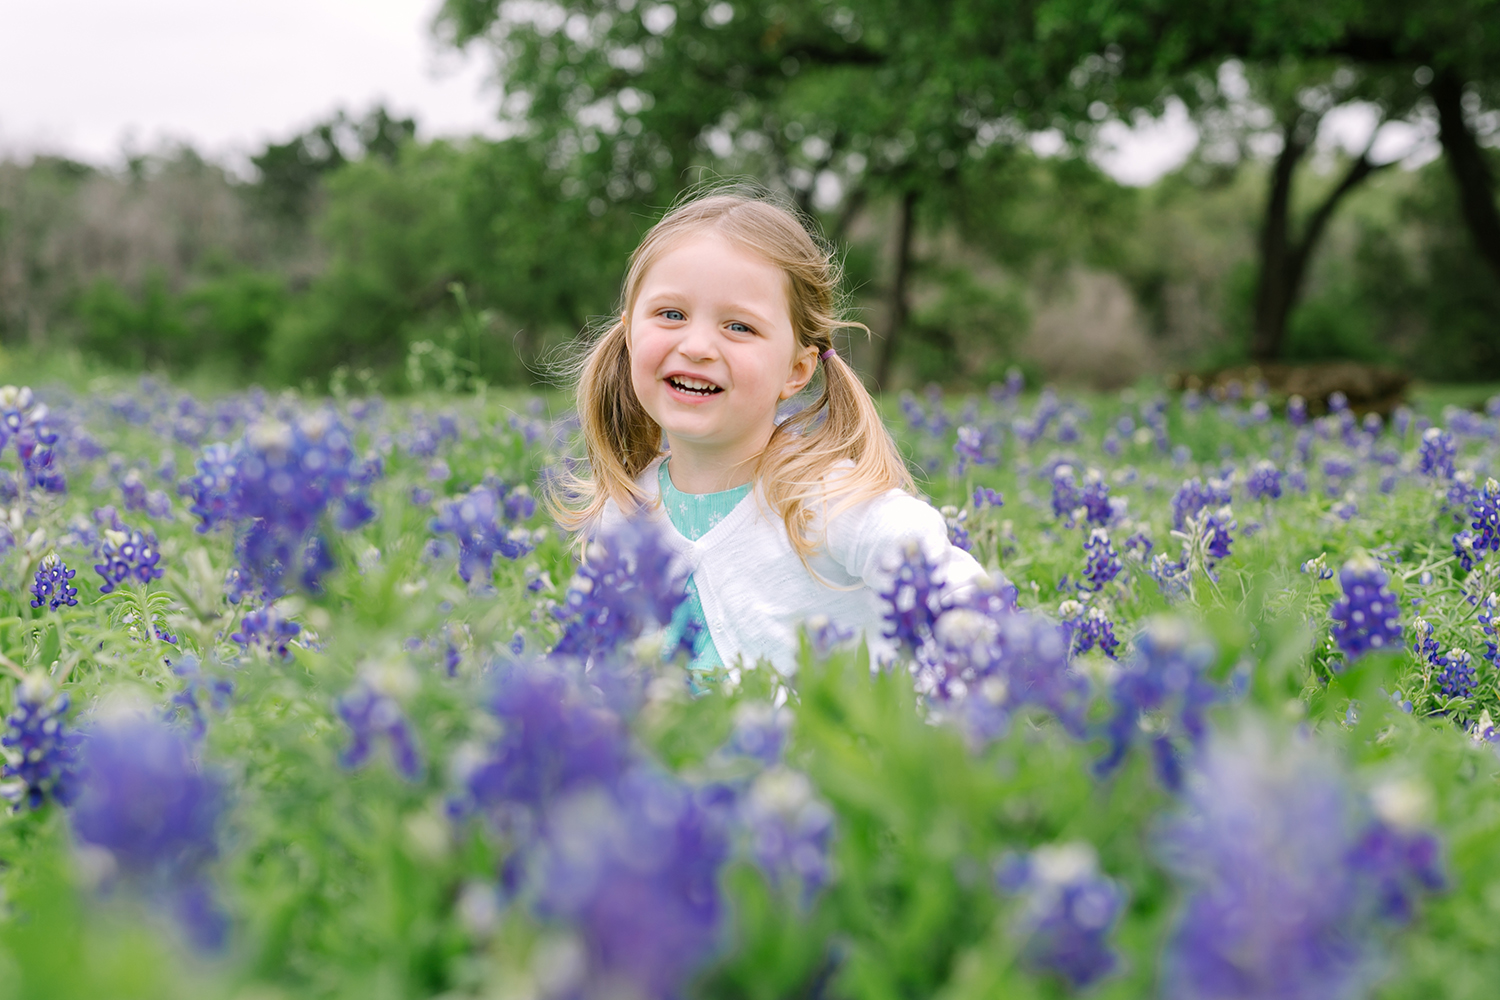 austin-bluebonnet-wildflower-photographer-mini-portraits-04.jpg